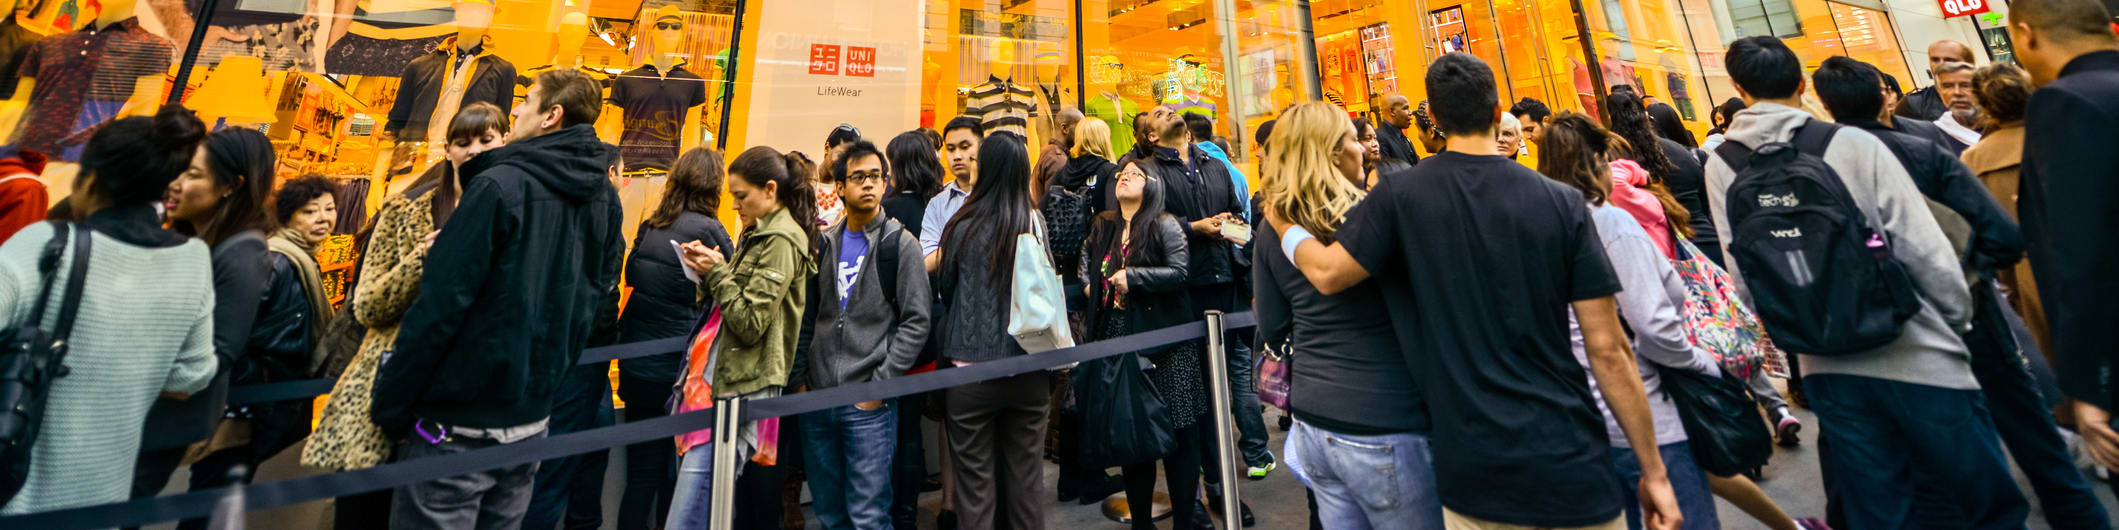 people lined up outside store